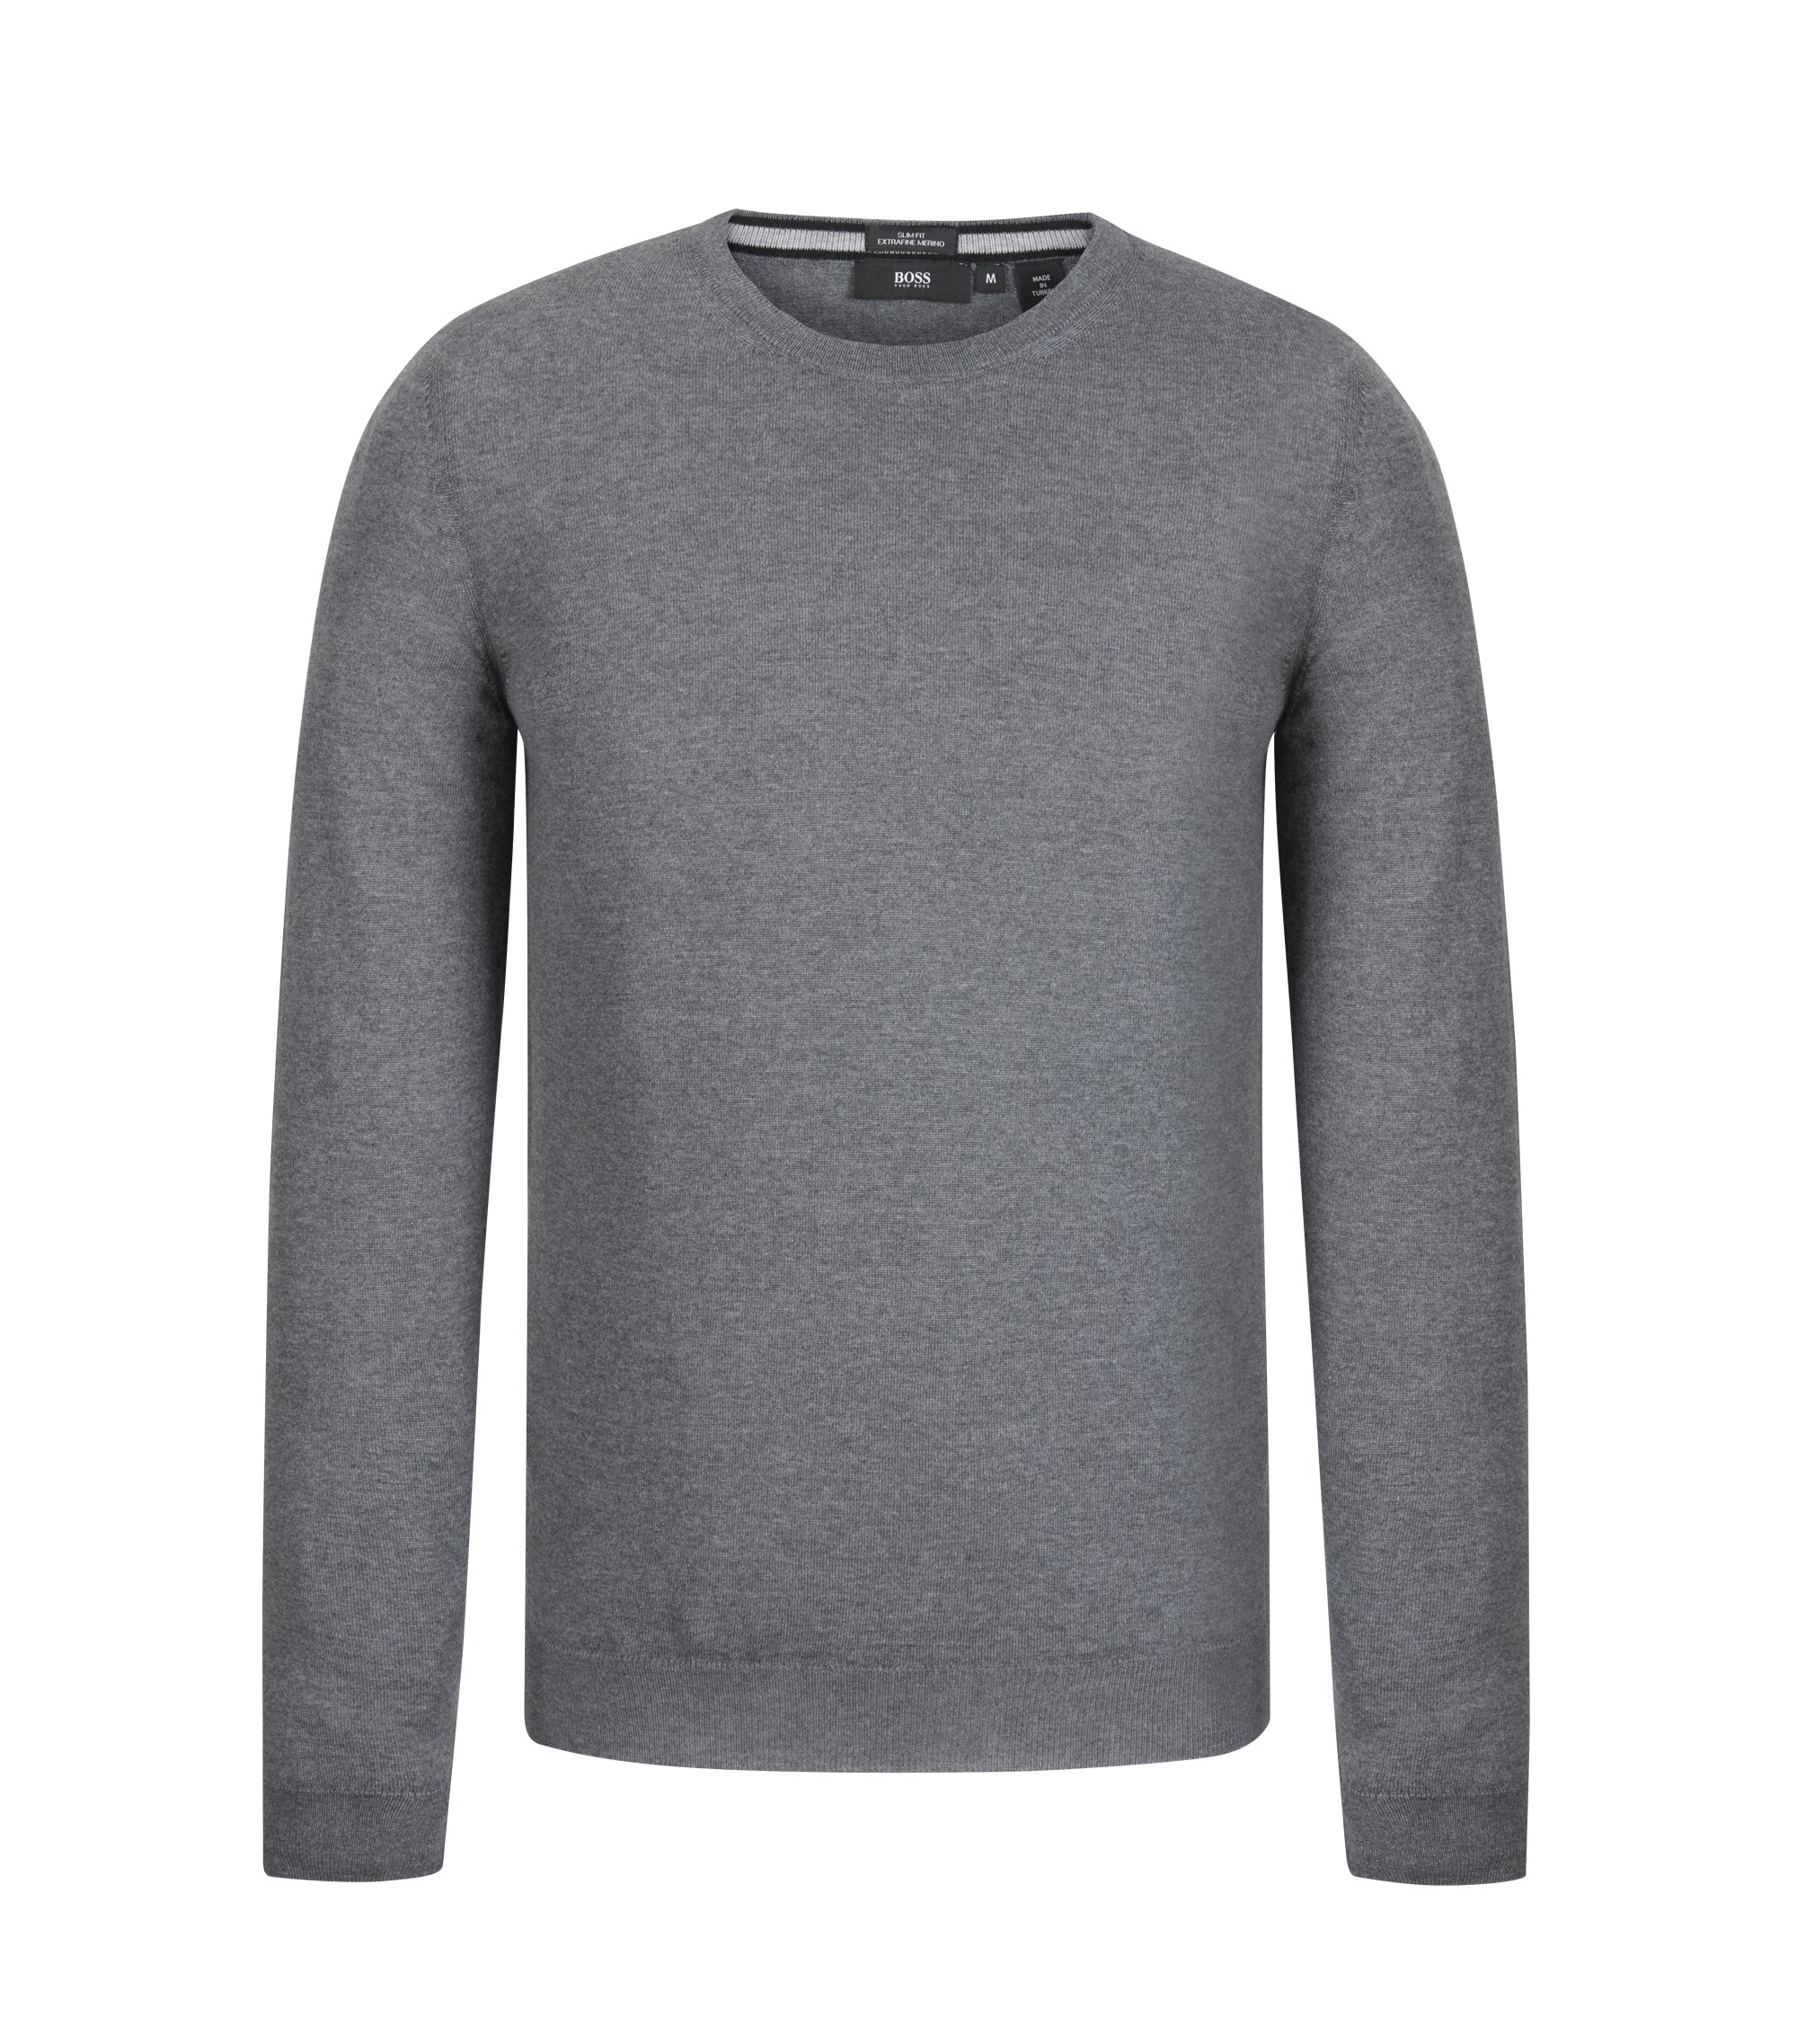 Extra-Fine Merino Wool Sweater | Leno N, Grey